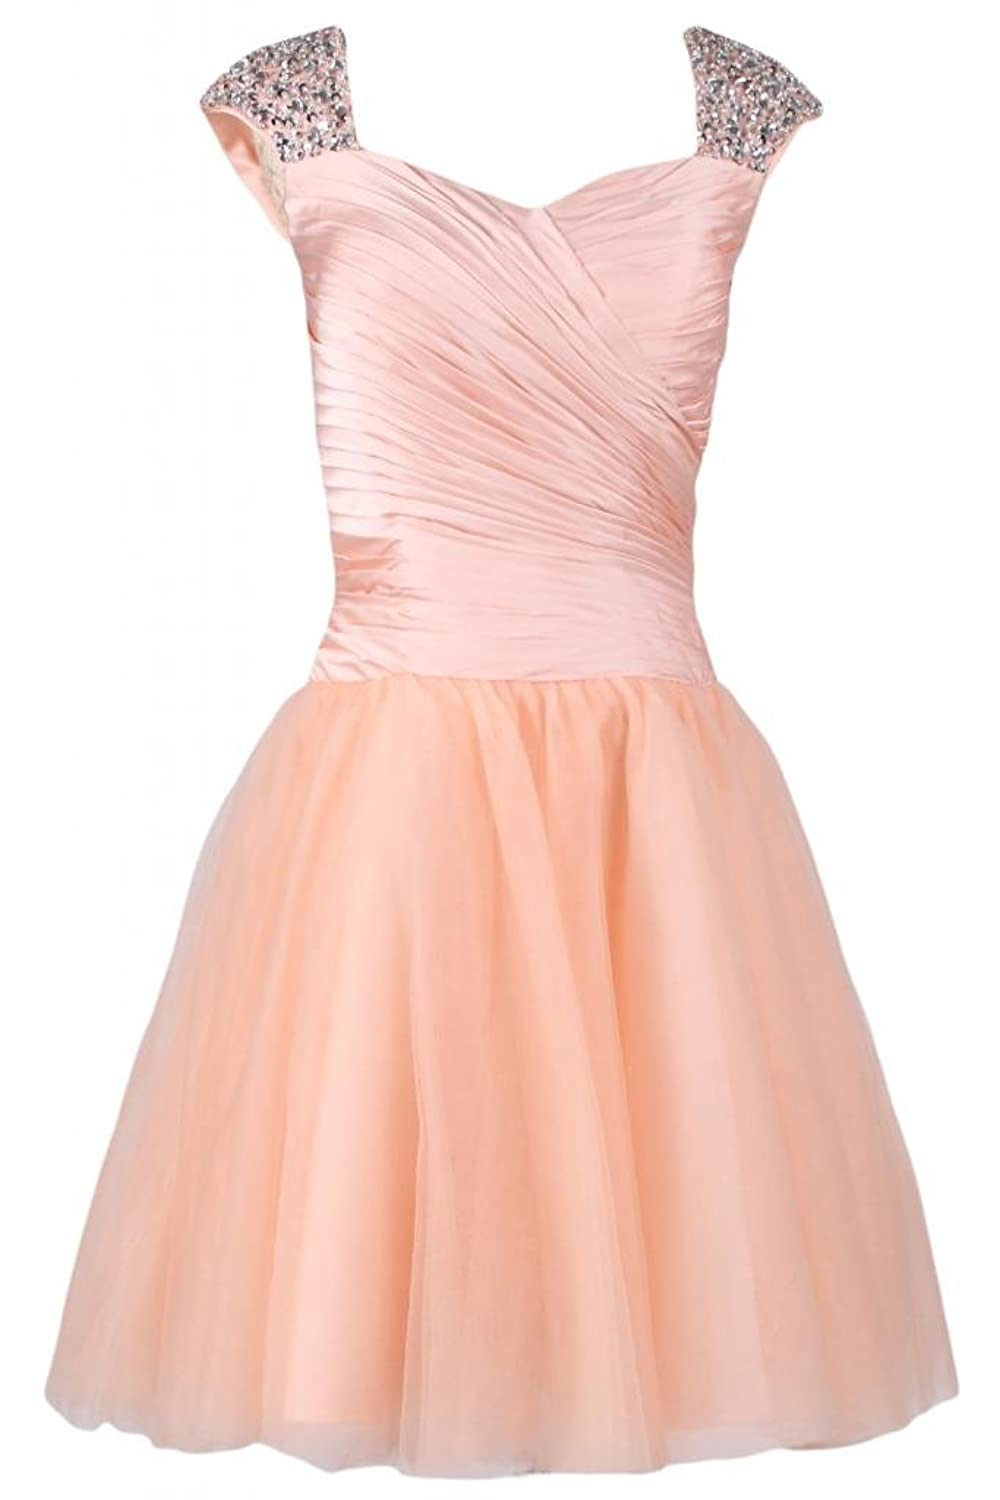 Sunvary Graceful A-line Short Graduation Dress Homecoming Dresses Pageant Gown